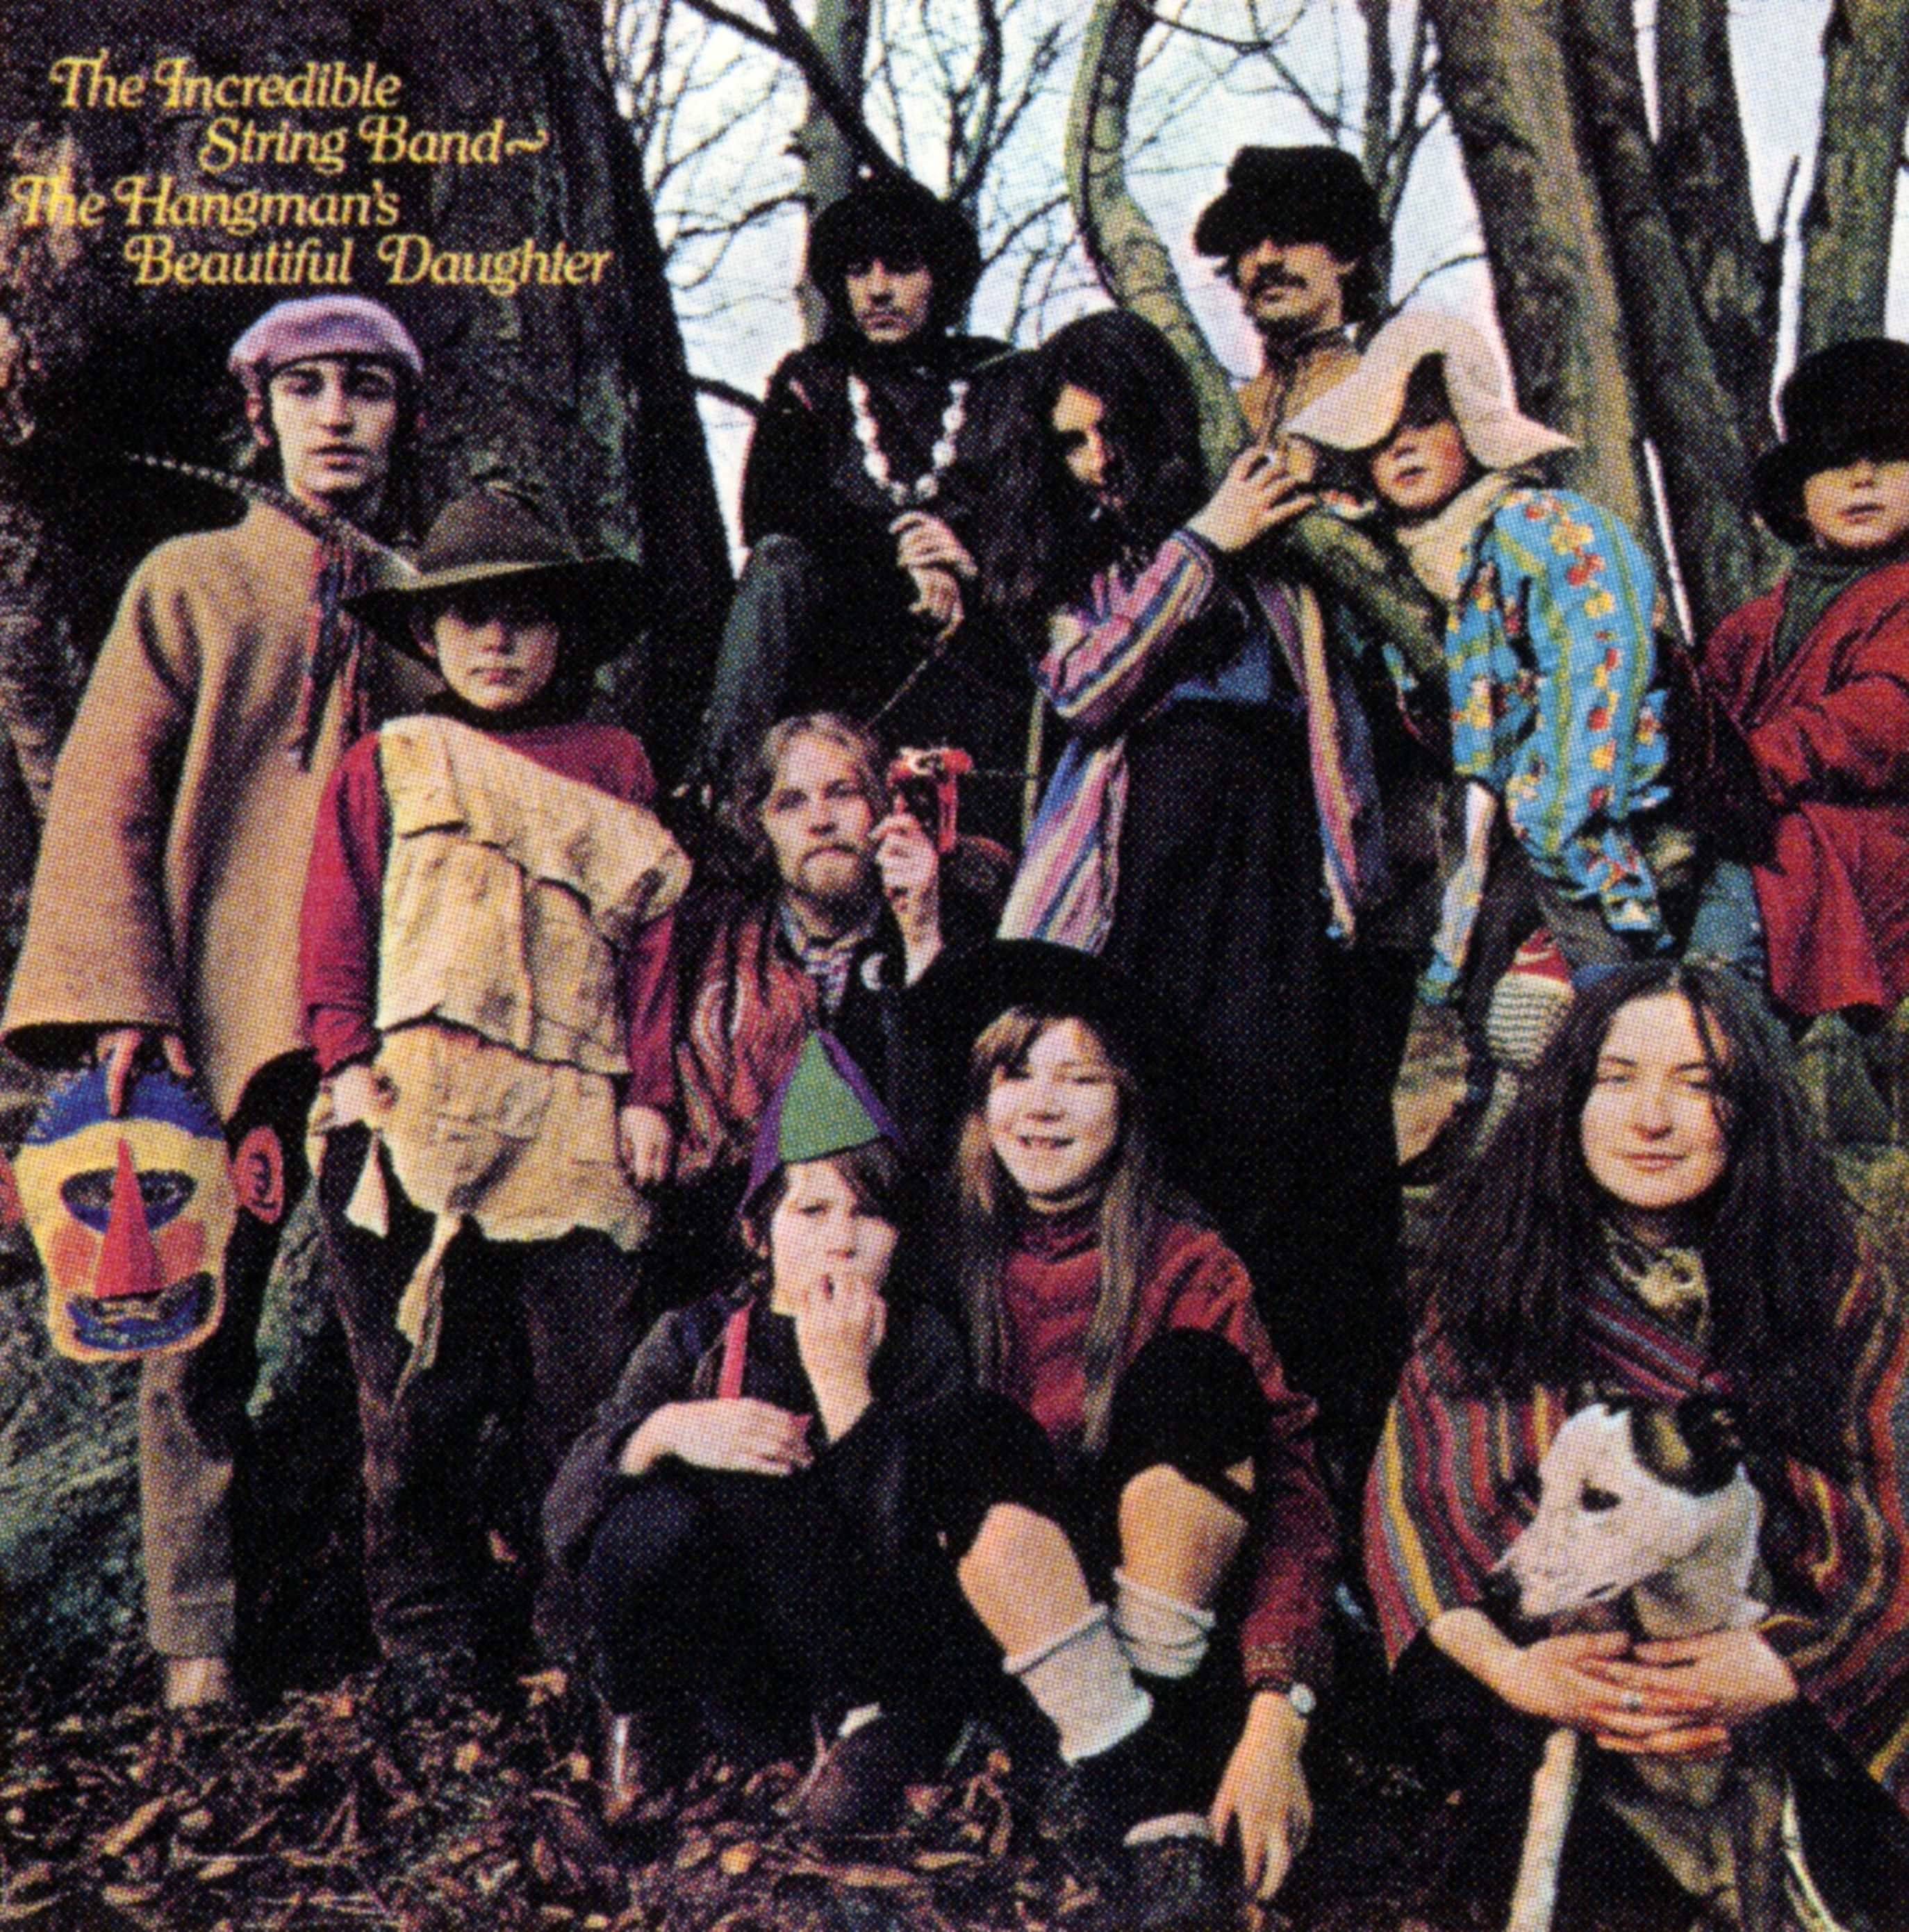 The incredible string band The hangmans beautiful daughter